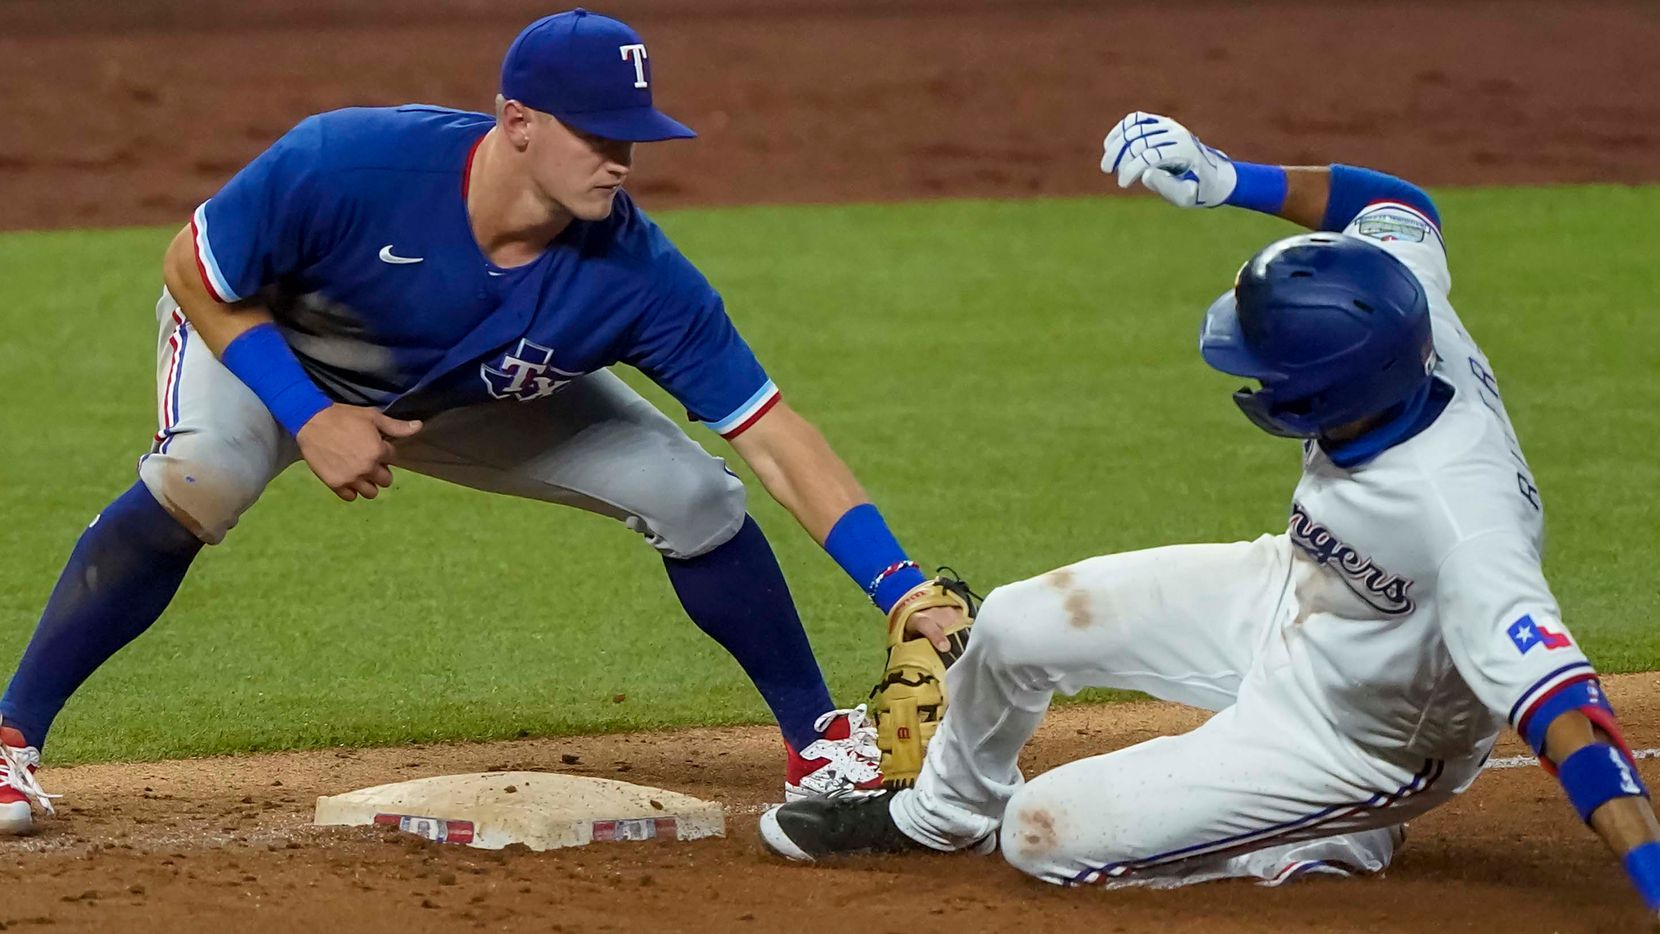 Infielder Yadiel Rivera is out at third base as Josh Jung applies the tag in an intrasquad game during Texas Rangers Summer Camp at Globe Life Field on Saturday, July 18, 2020.